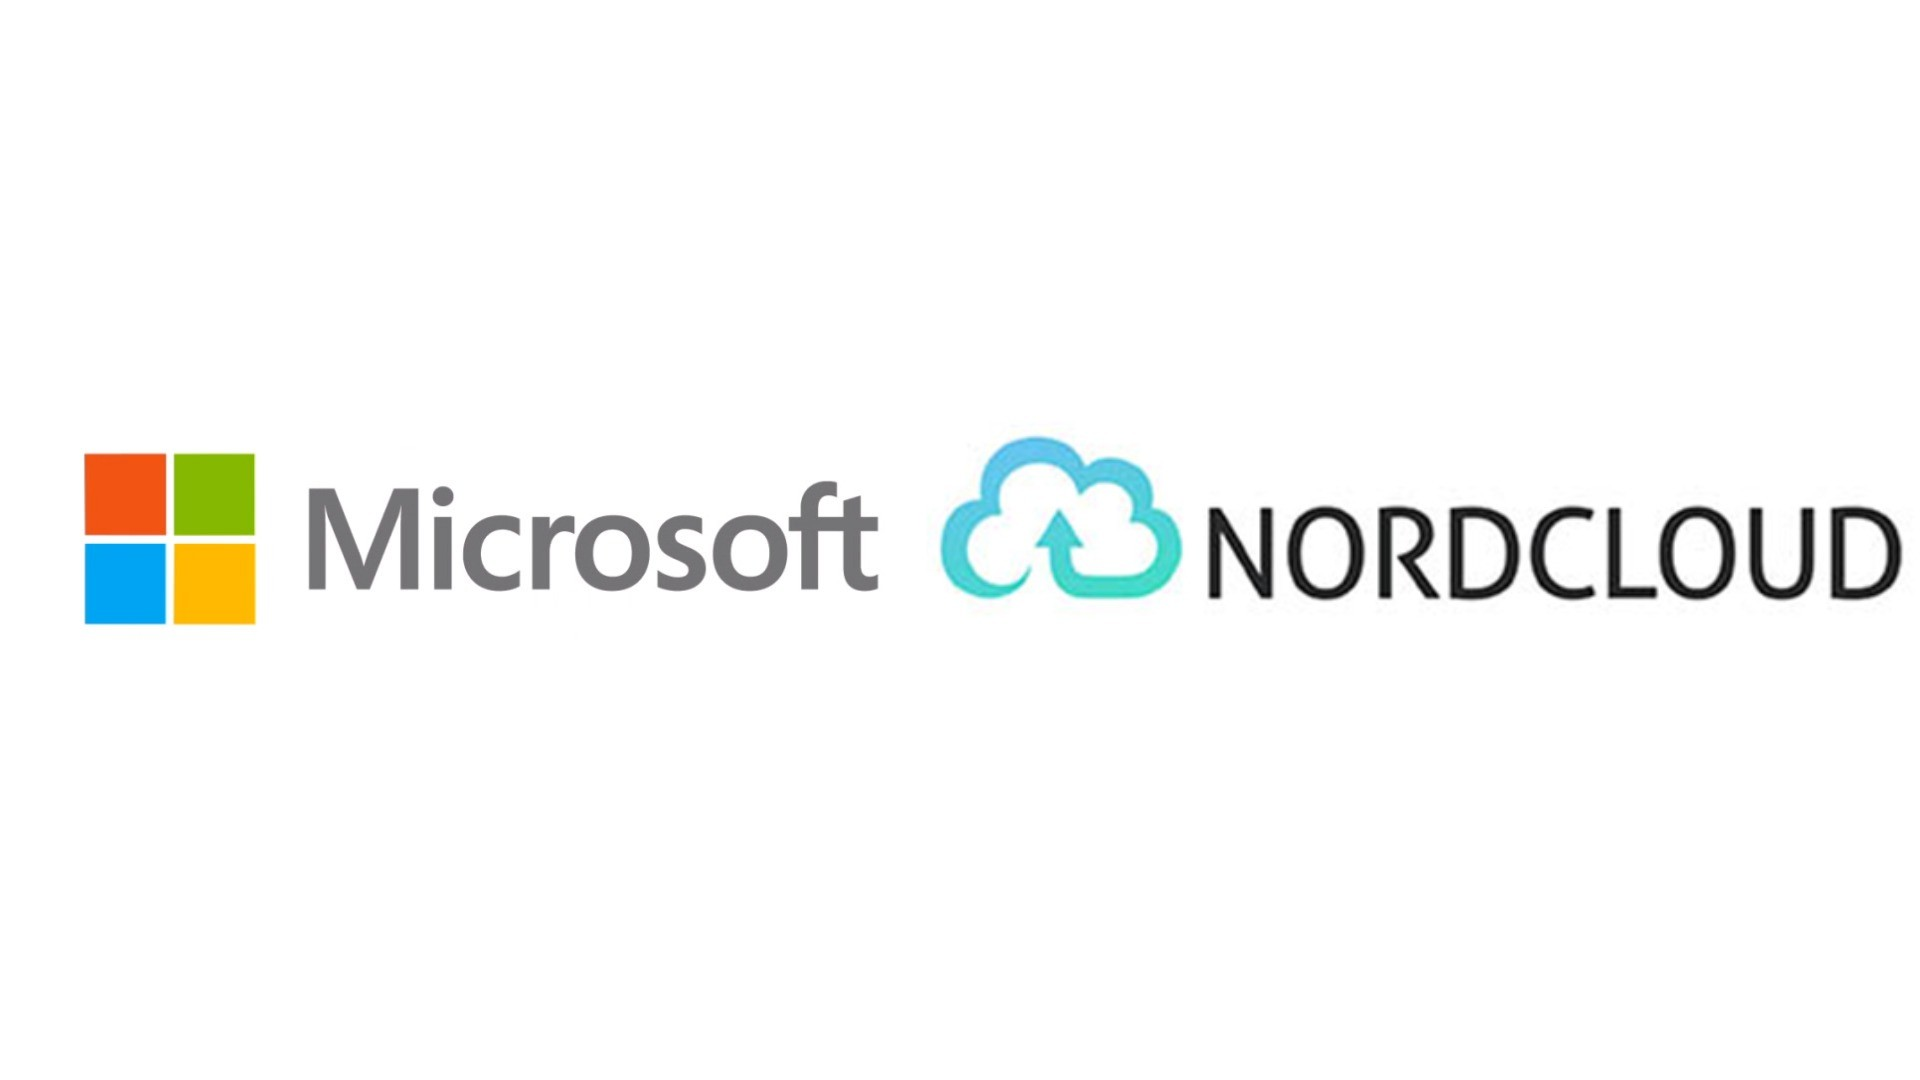 Microsoft Teams Up With Nordcloud To Boost The Spread Of